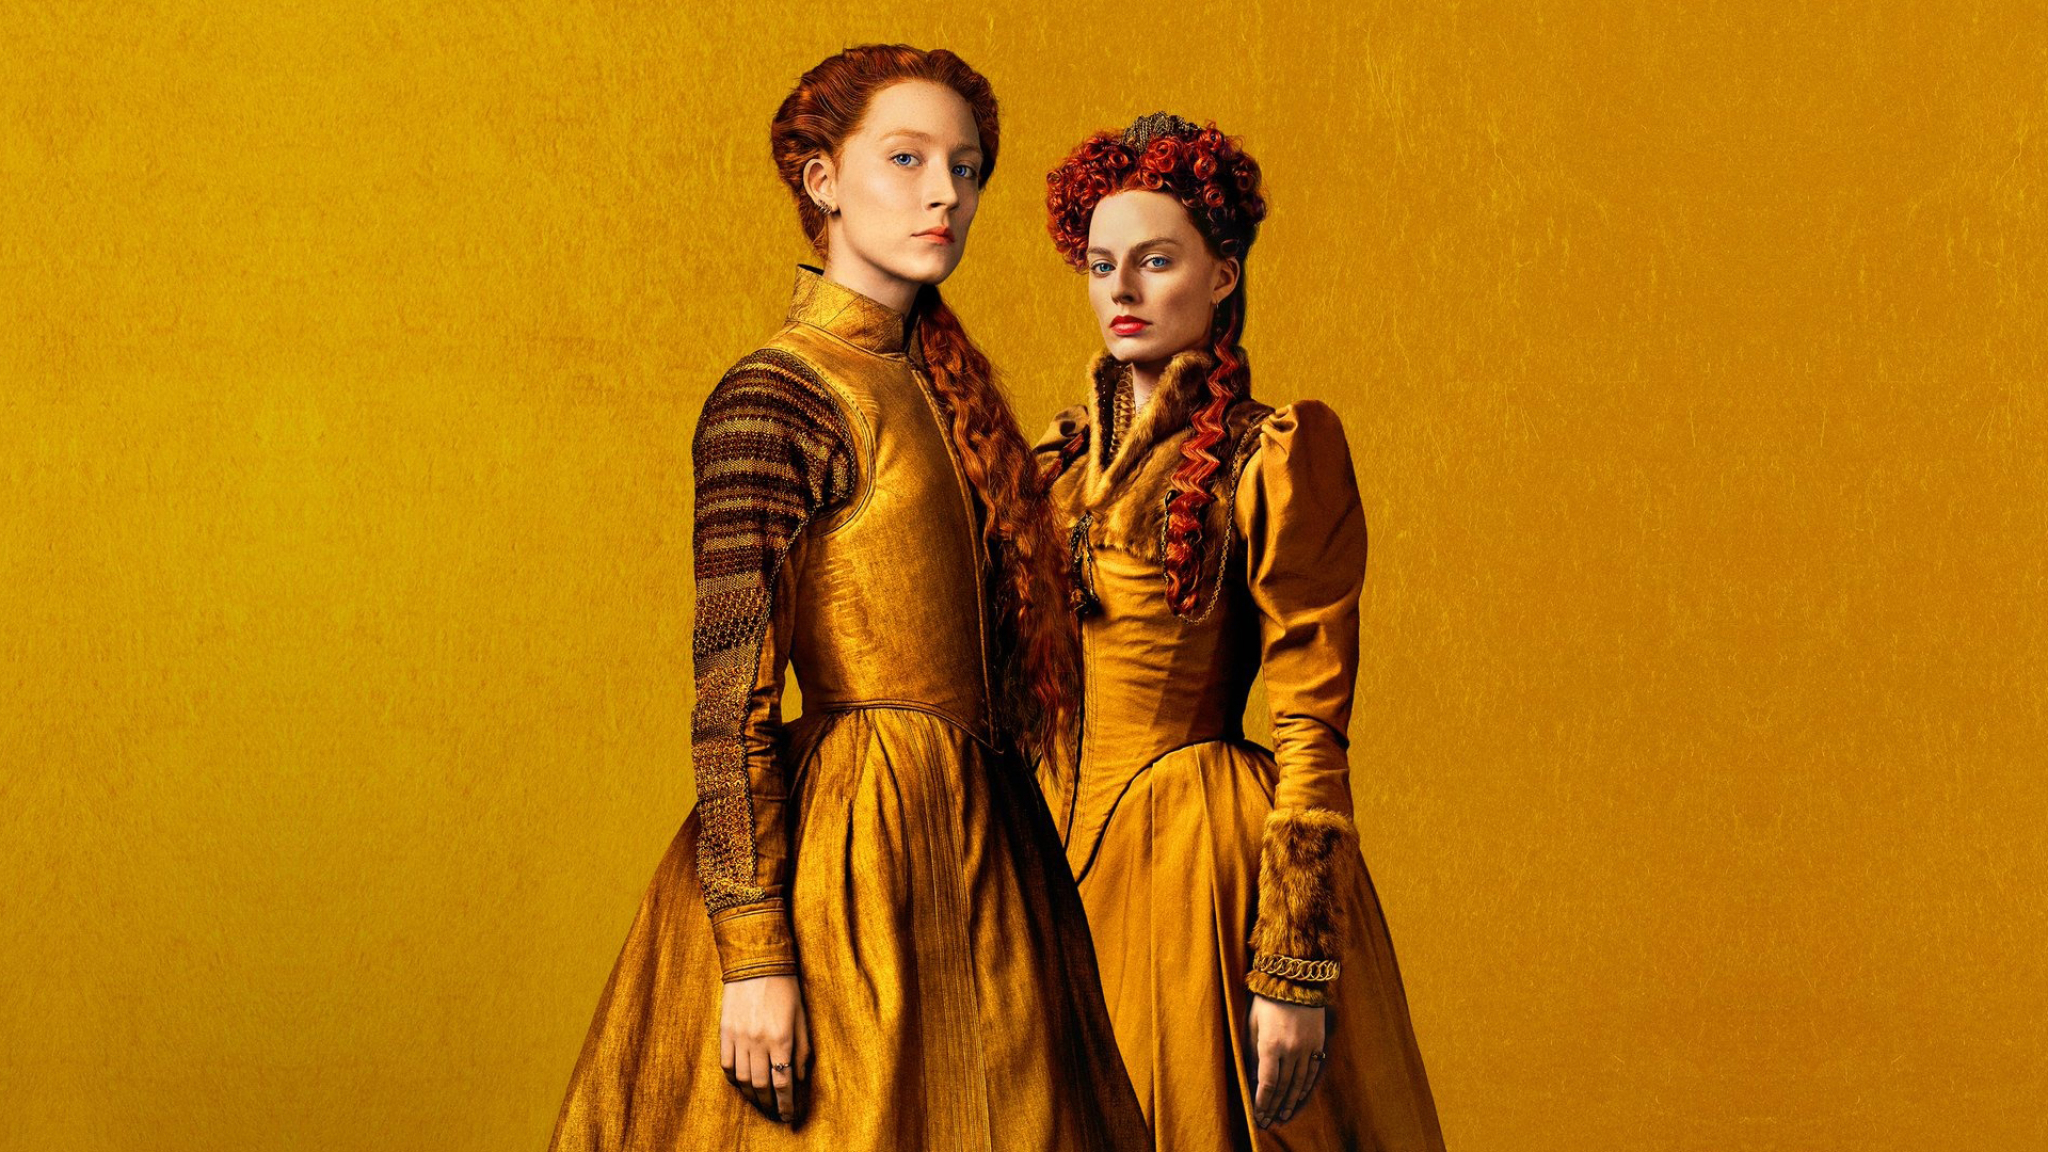 2048x1152 Margot Robbie and Saoirse Ronan in Mary Queen of Scots 2048x1152